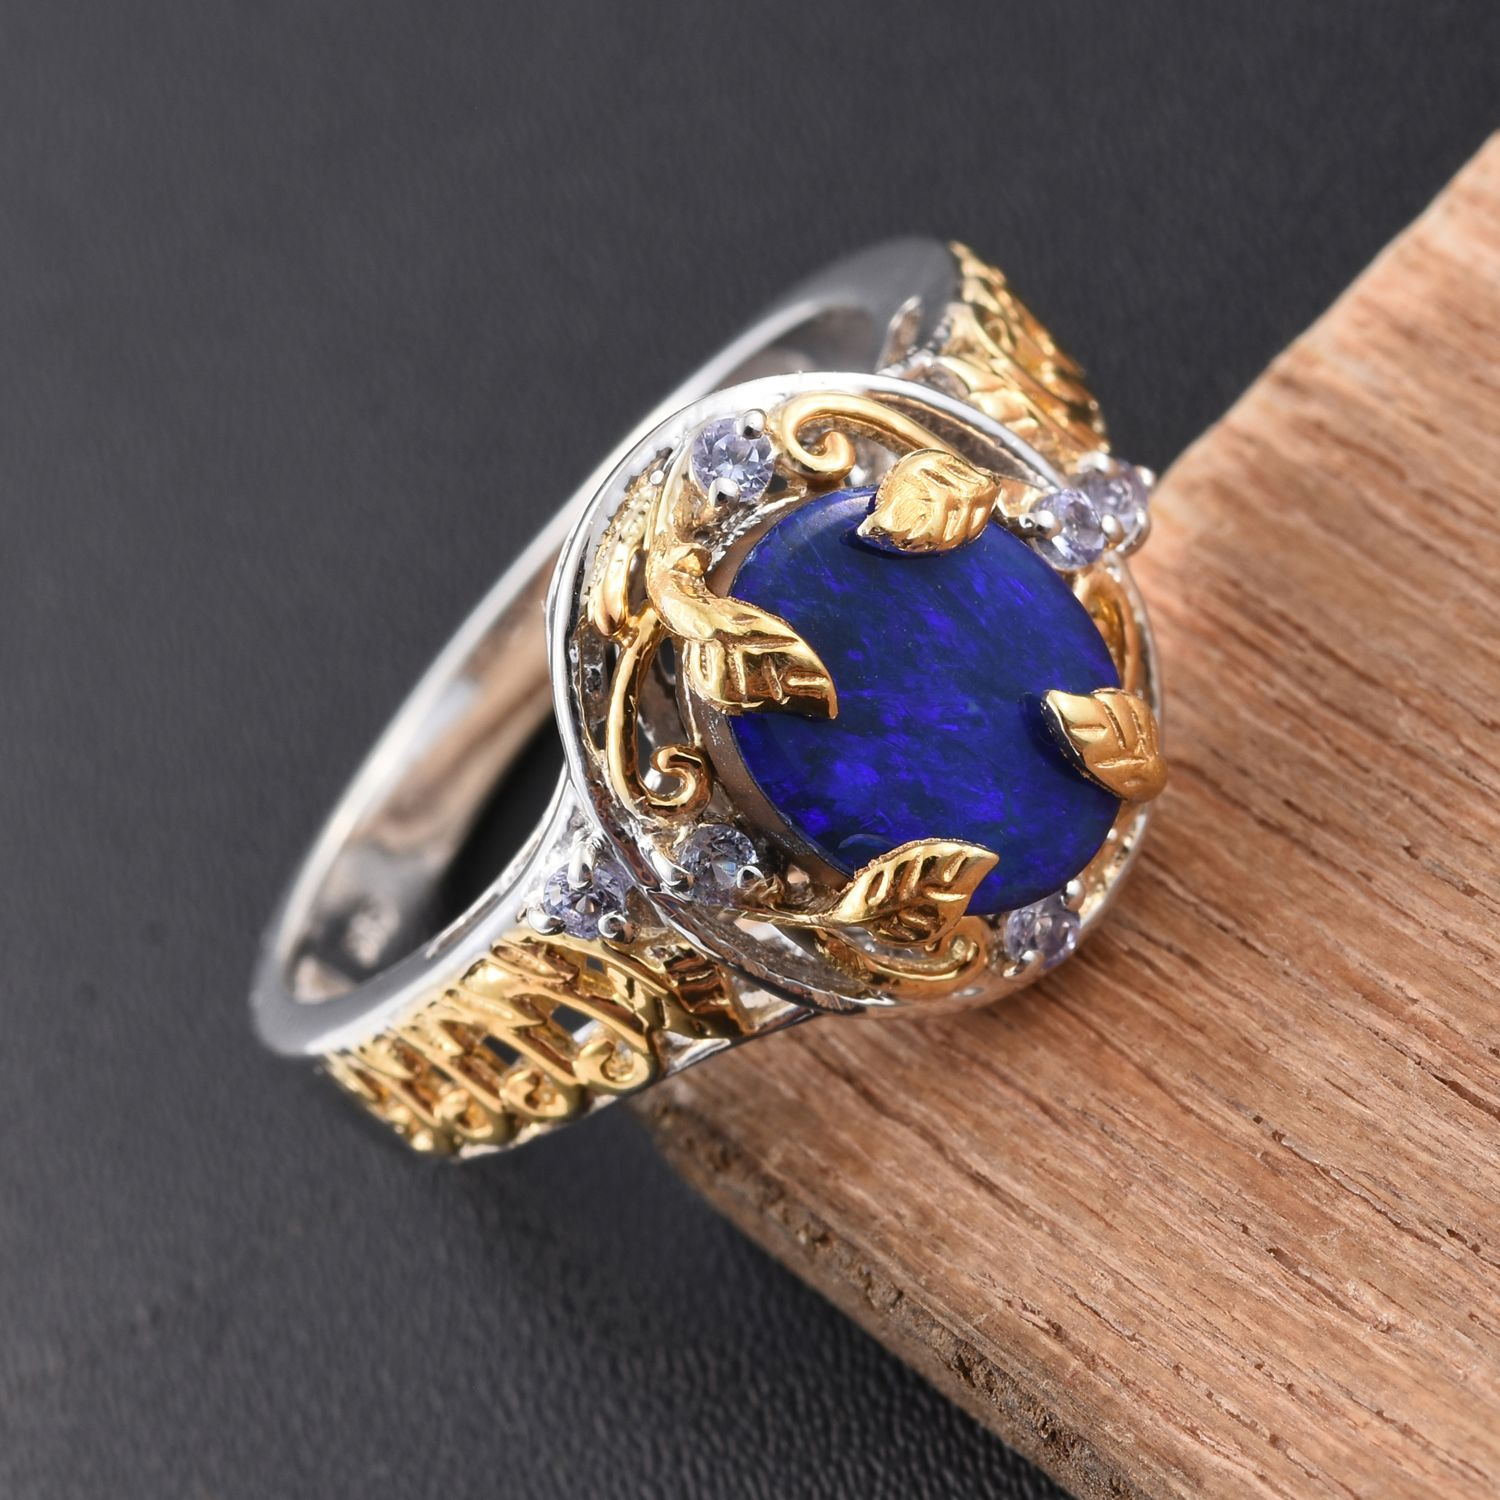 Karen 39 s fabulous finds australian boulder opal tanzanite for Jewelry stores boulder co